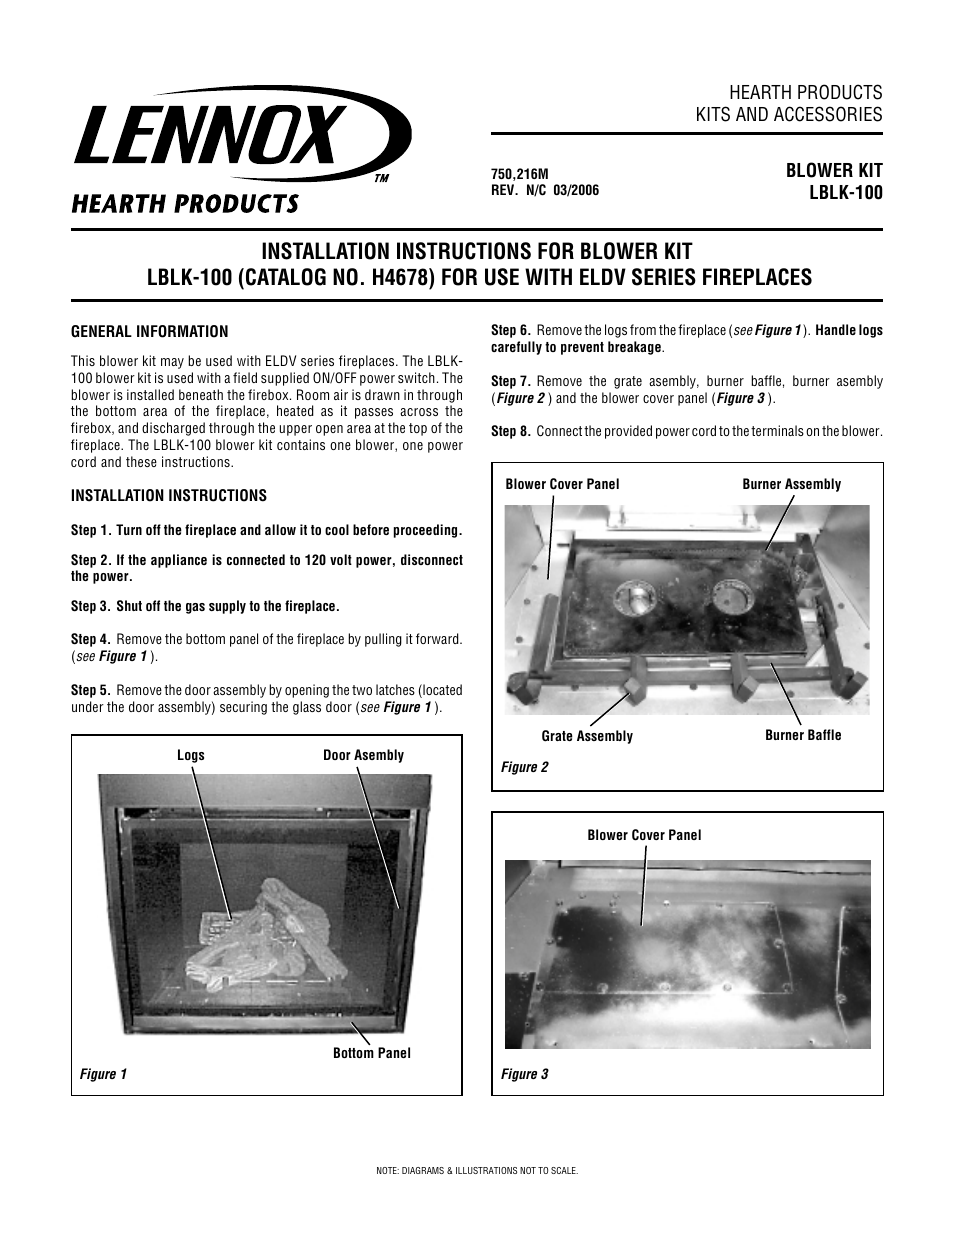 Lennox Hearth Blower Kit Lblk 100 User Manual 4 Pages